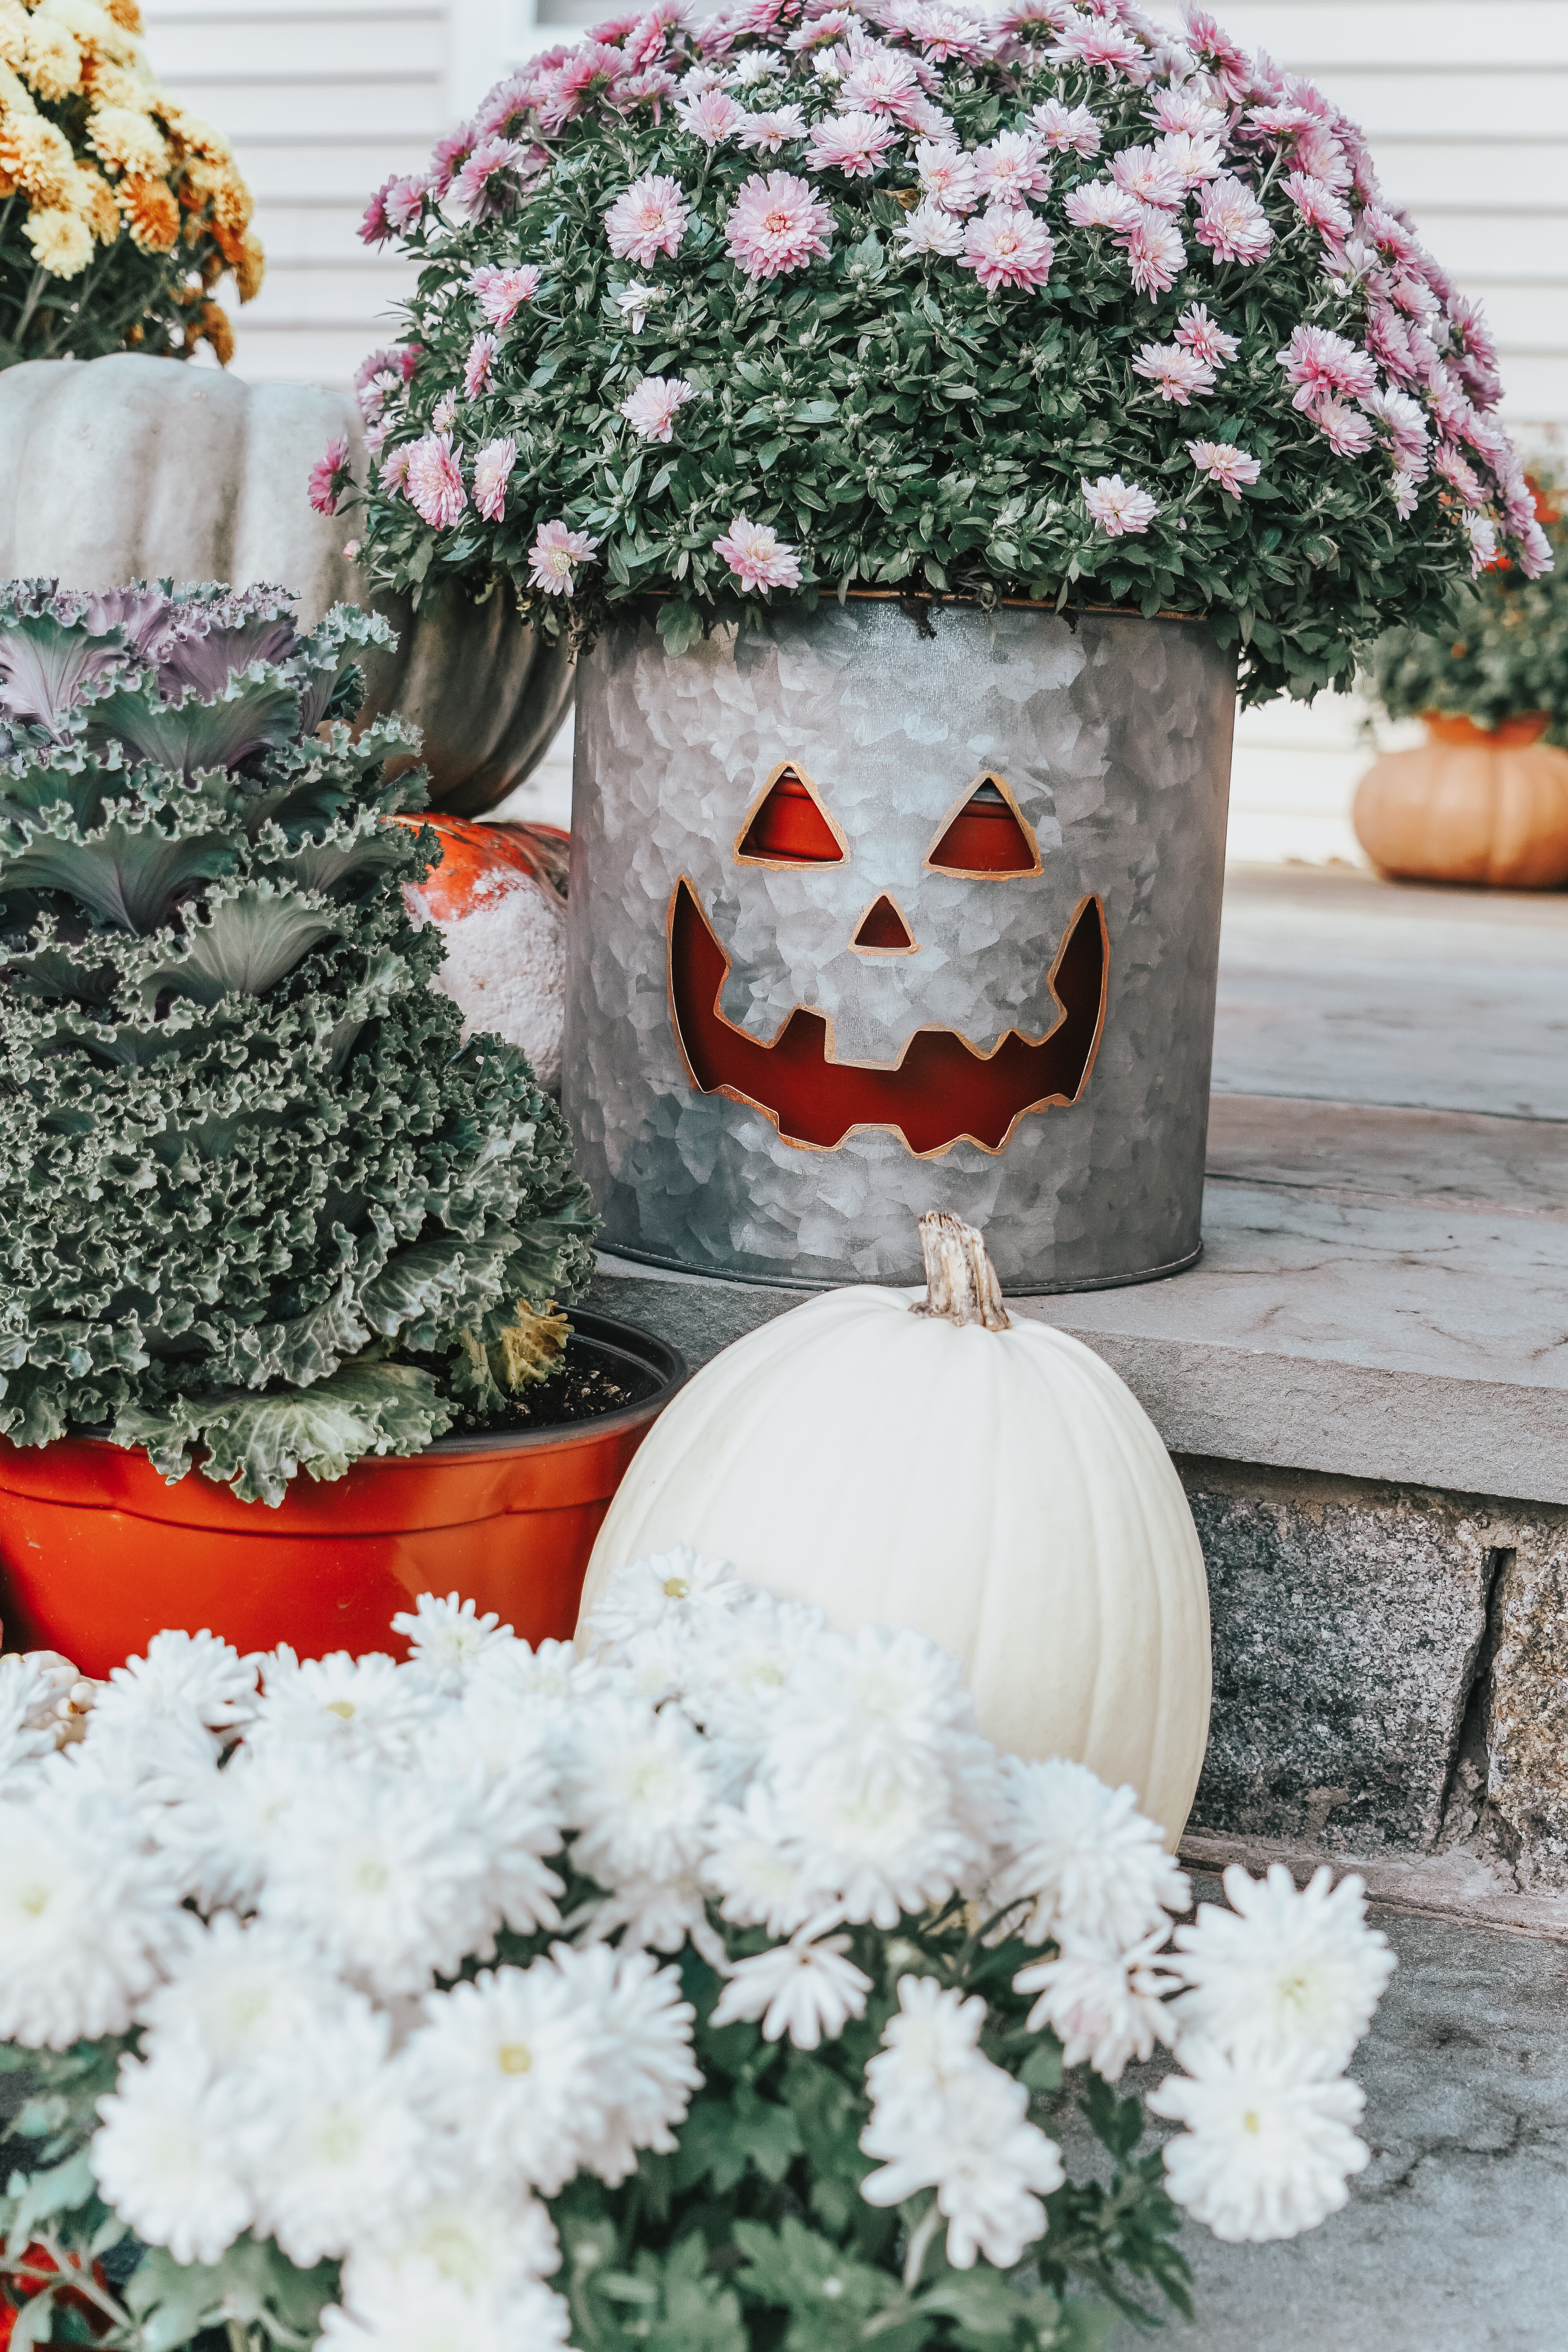 I love decorating for fall, especially the front porch. Here are my favorite Inexpensive Fall Front Porch inspiration ideas that you can do on any budget!